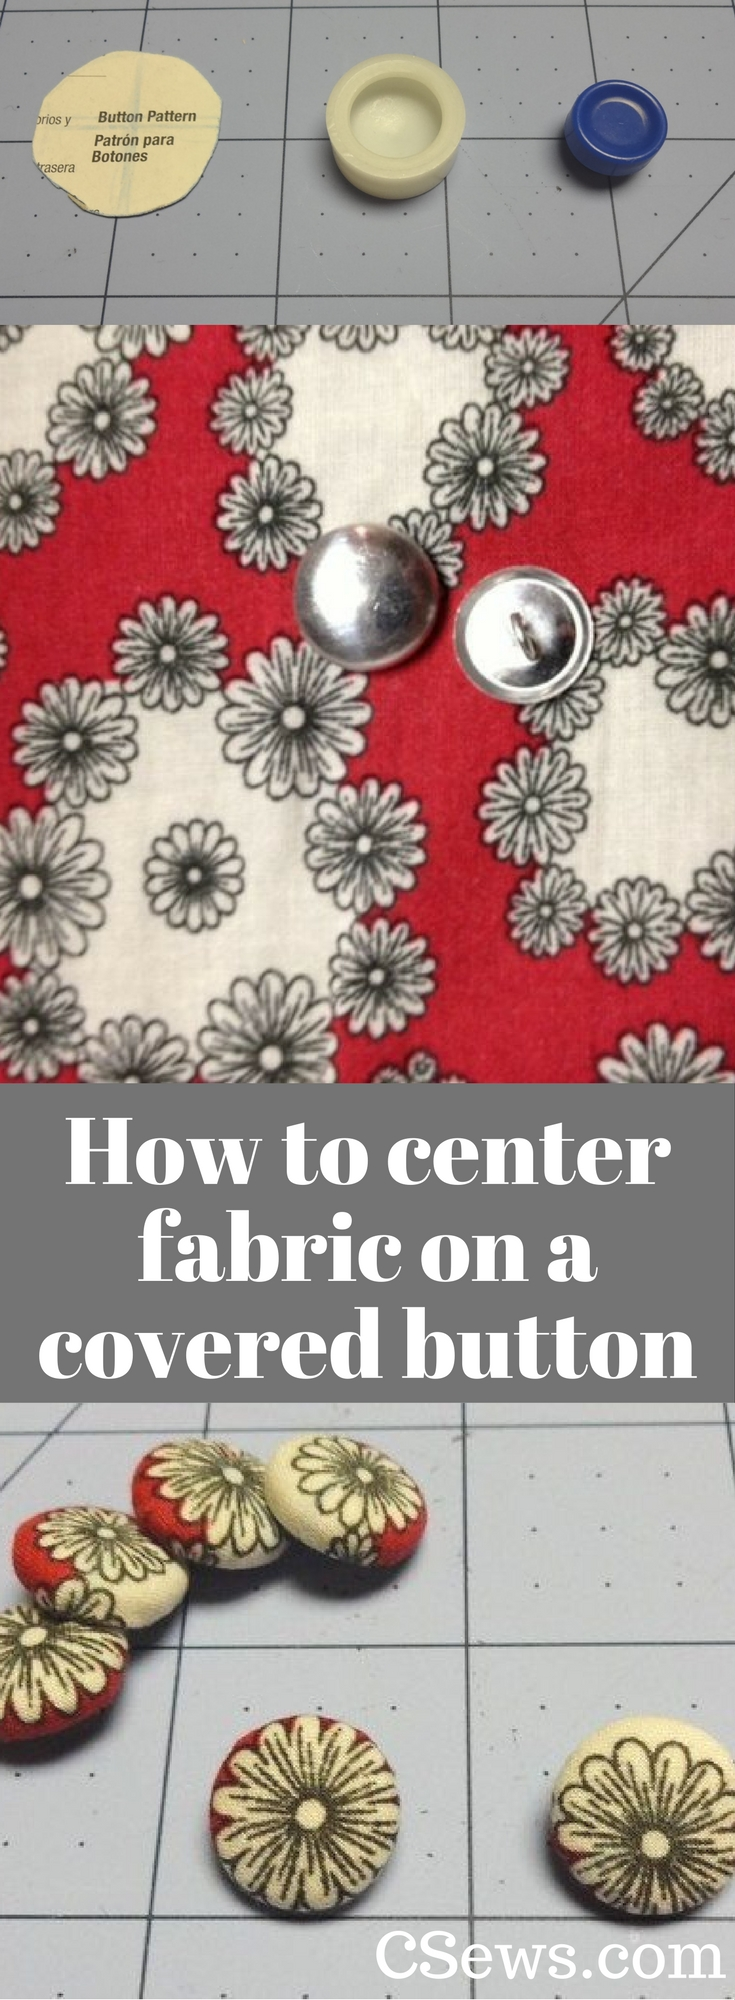 Tutorial - How to center fabric on a covered button, covered button kit